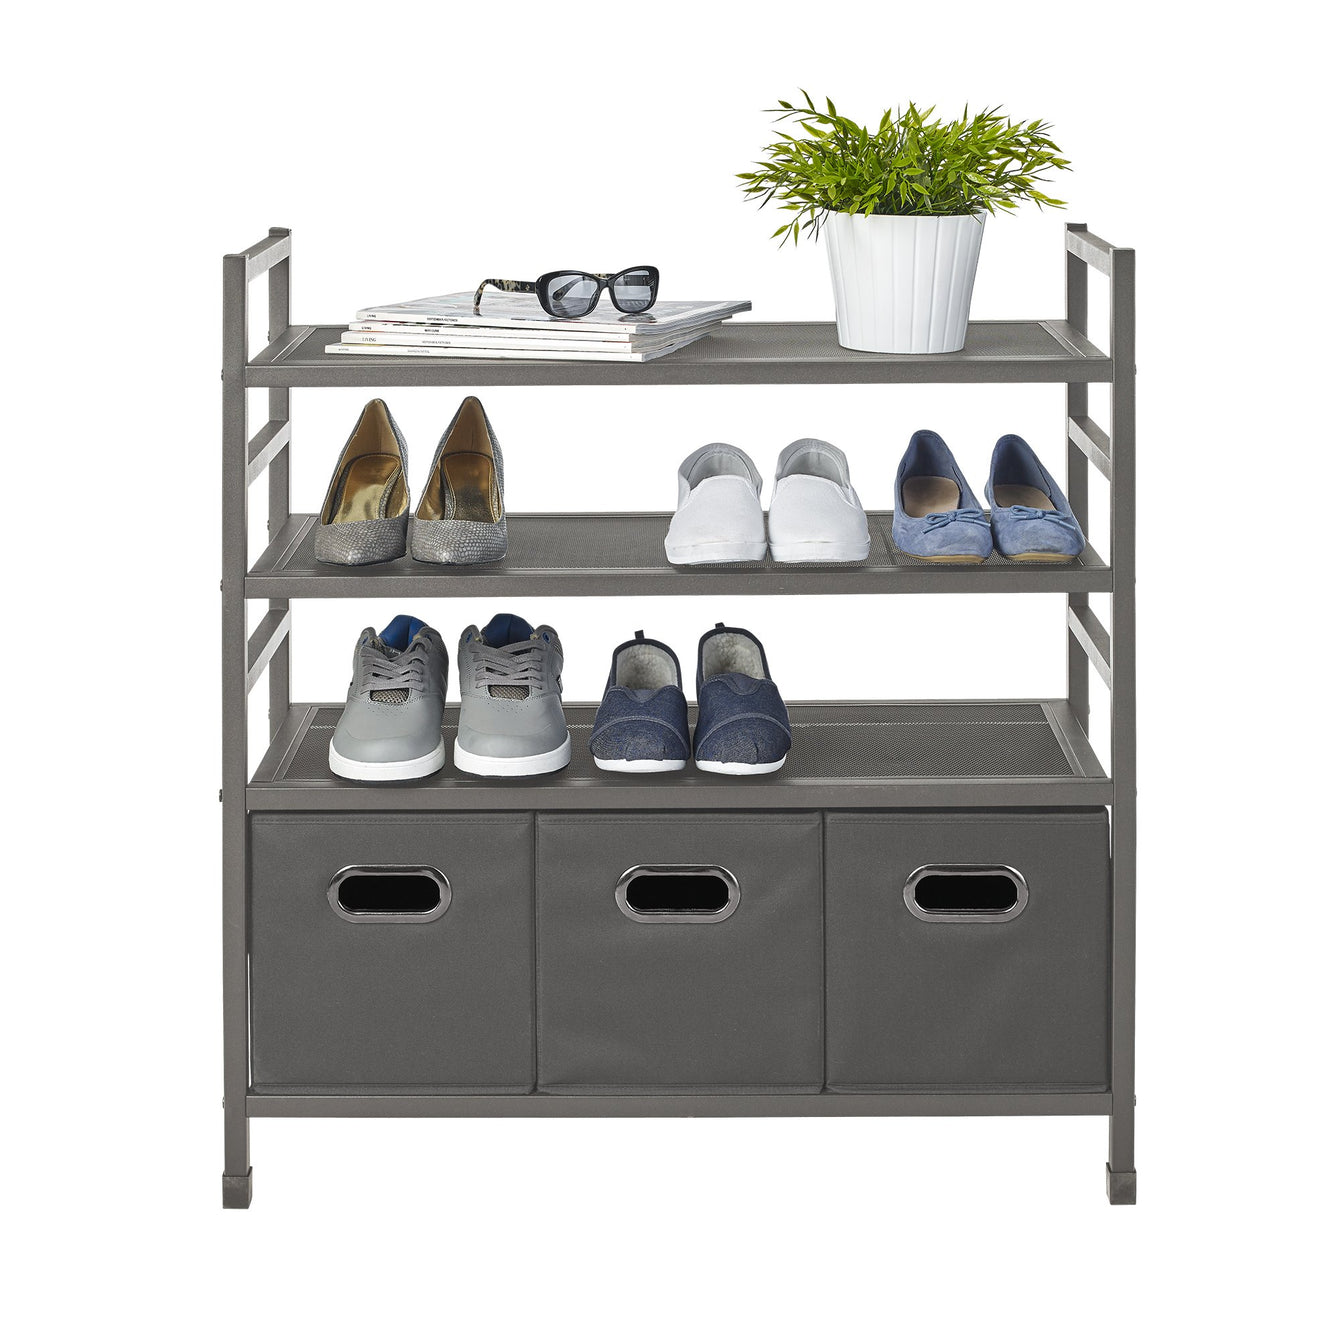 4 Tier Stackable Metal Storage Rack w Fabric Bins